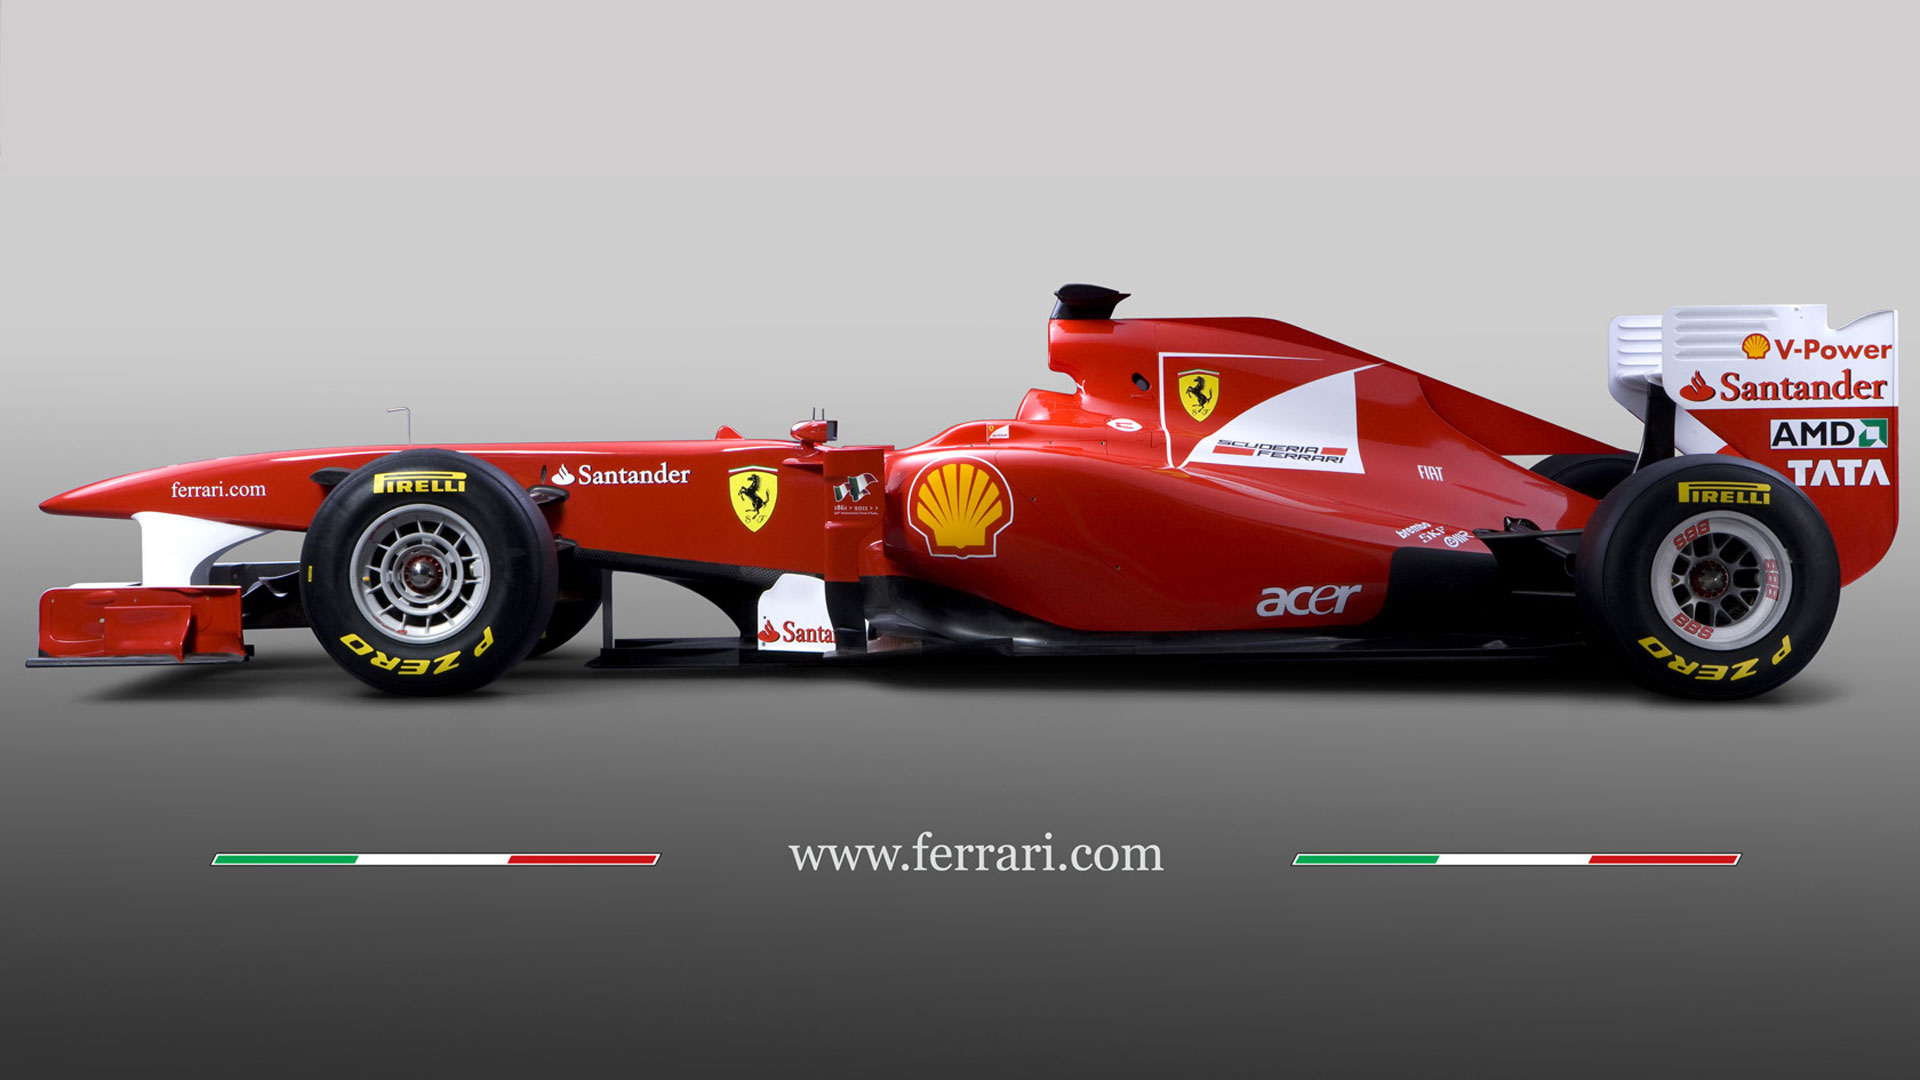 ferrari f1 car side angle